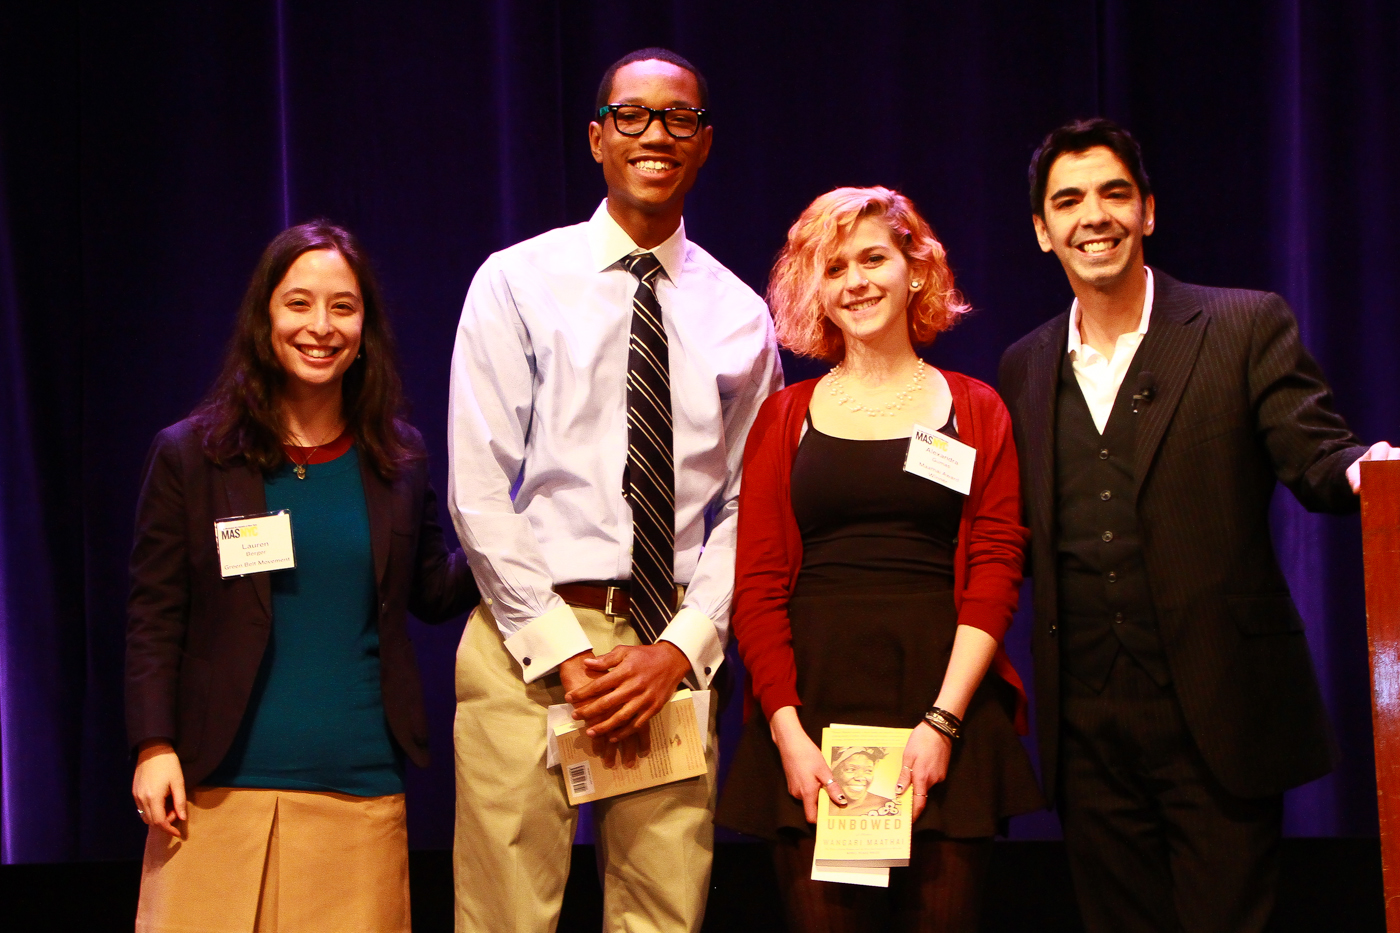 (L-R) Lauren Berger, Jaylen Gregory, Alexandra Gumas, and Eddie Torres. Photo credit: Syd London